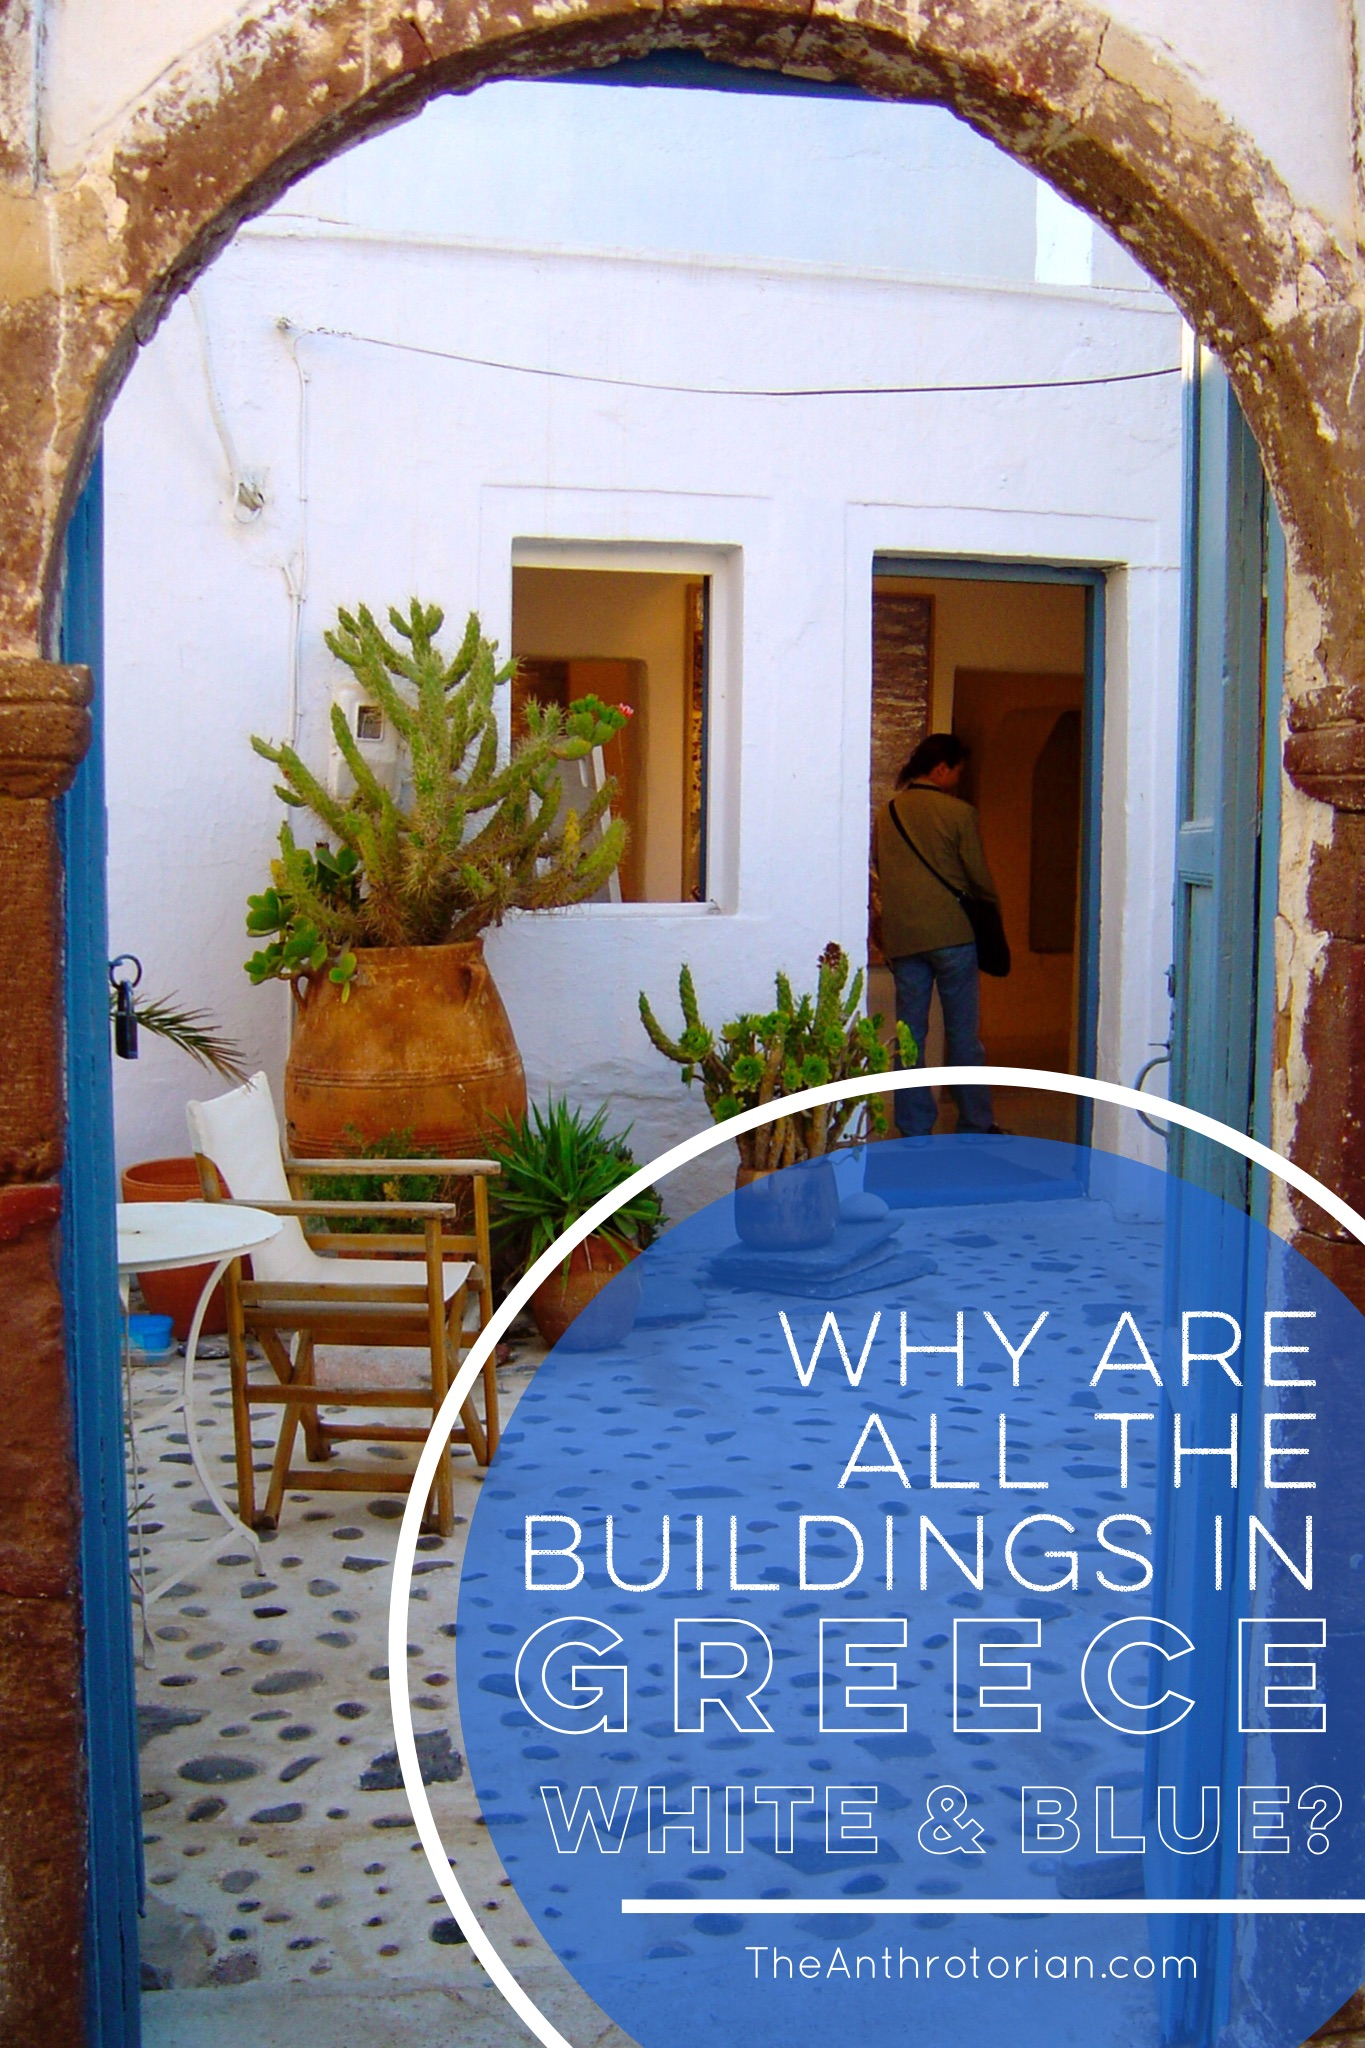 Greek, White and Blue: Why Are the Buildings in Greece